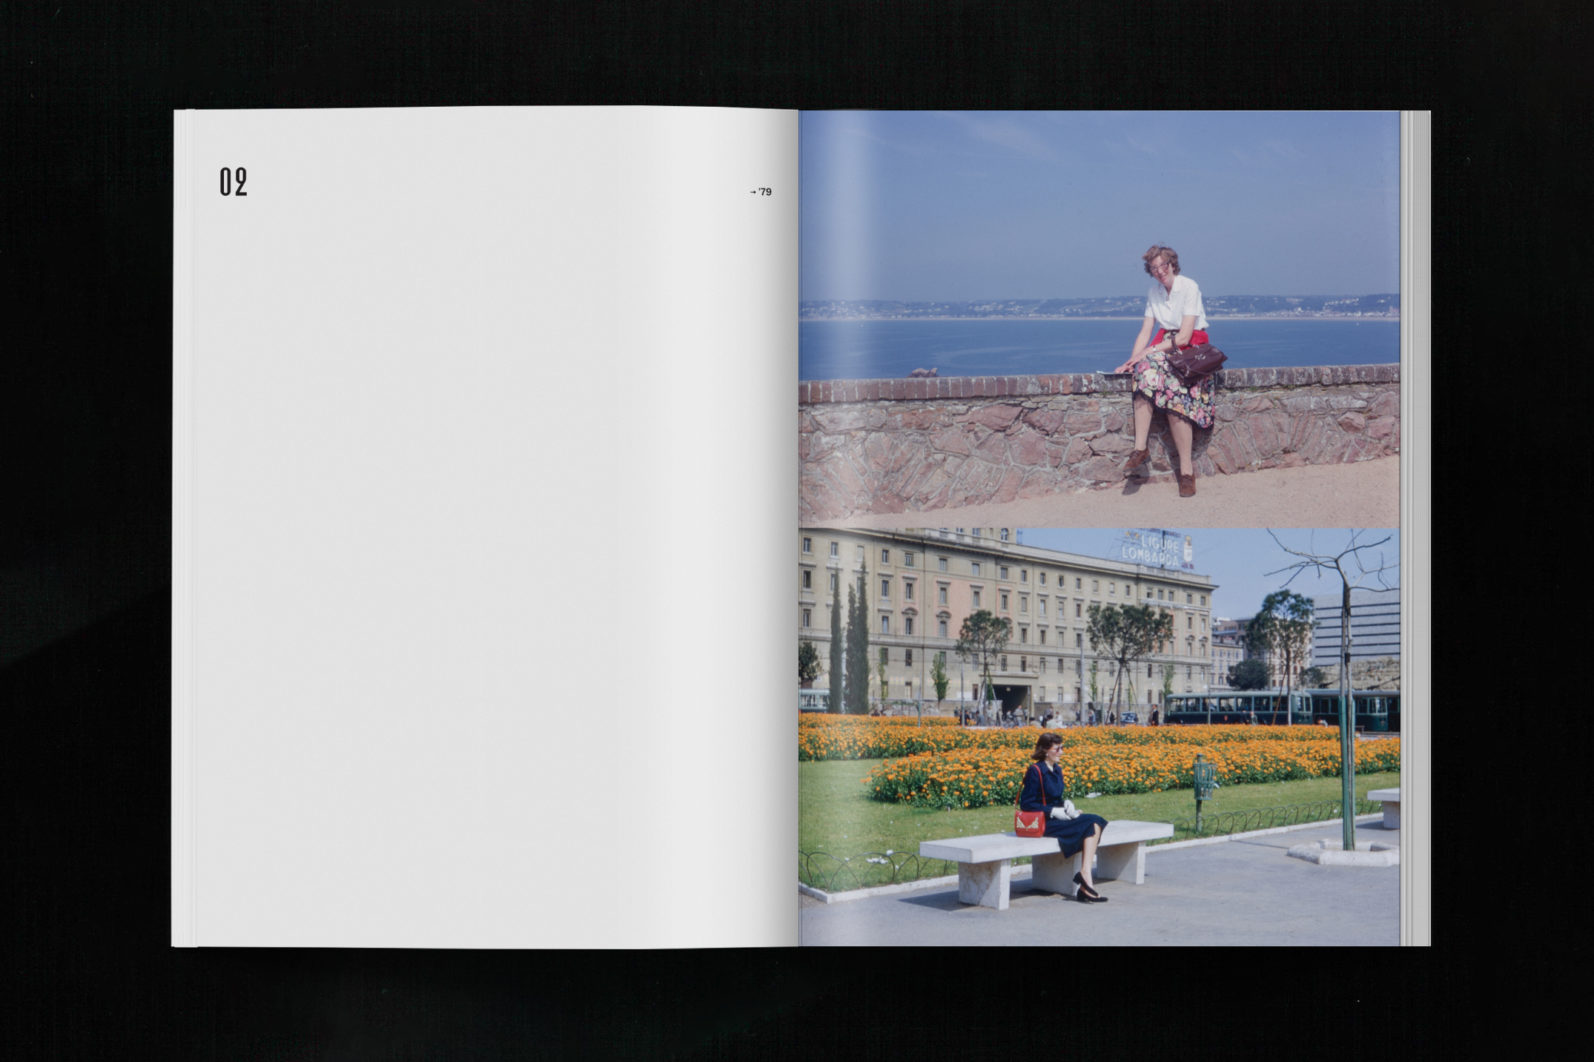 VACATIONIST spread showing two images, one of a woman seated on a beachfront ledge, and one seated on a park bench